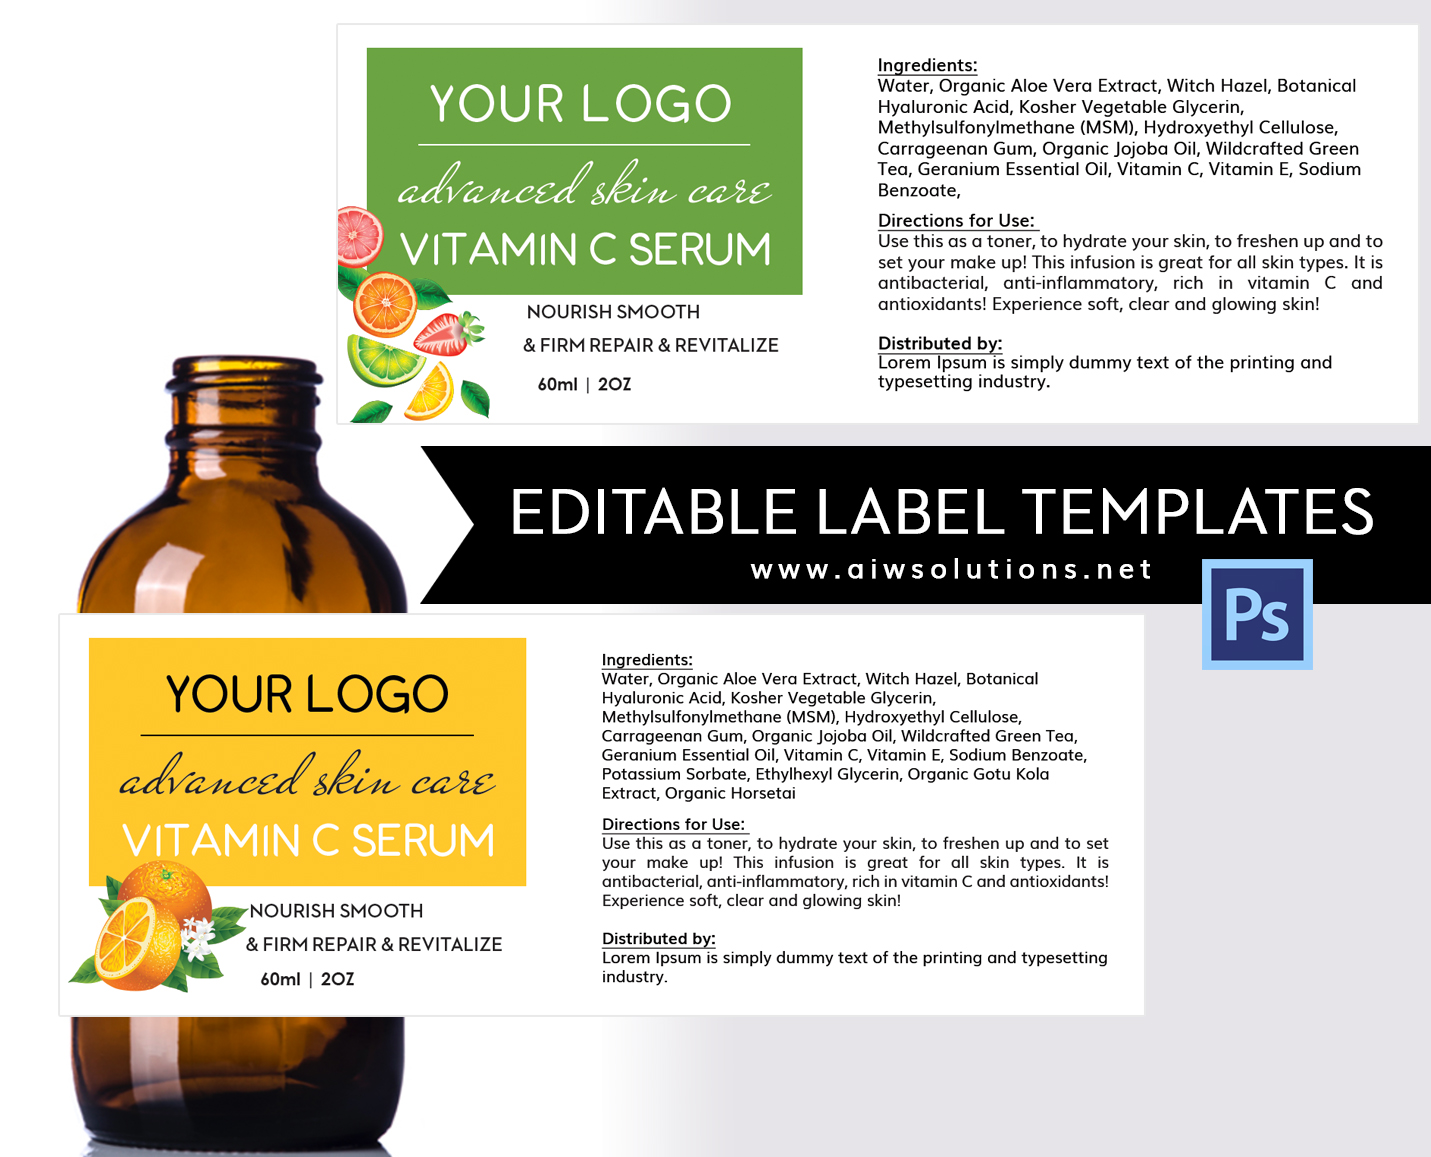 Vitamin Serum Label ID09 aiwsolutions